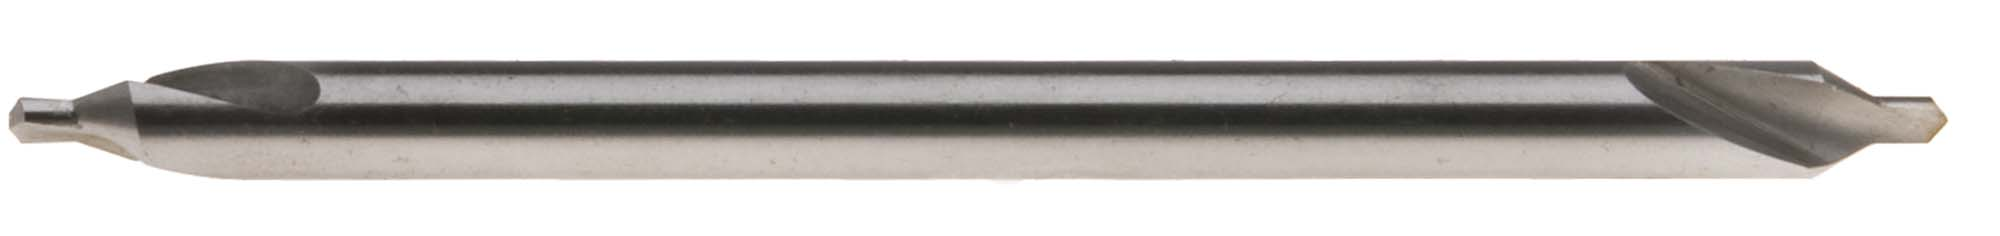 "CDL-4-5  #4 x 5"" Long Combined Drill and Countersink, High Speed Steel"